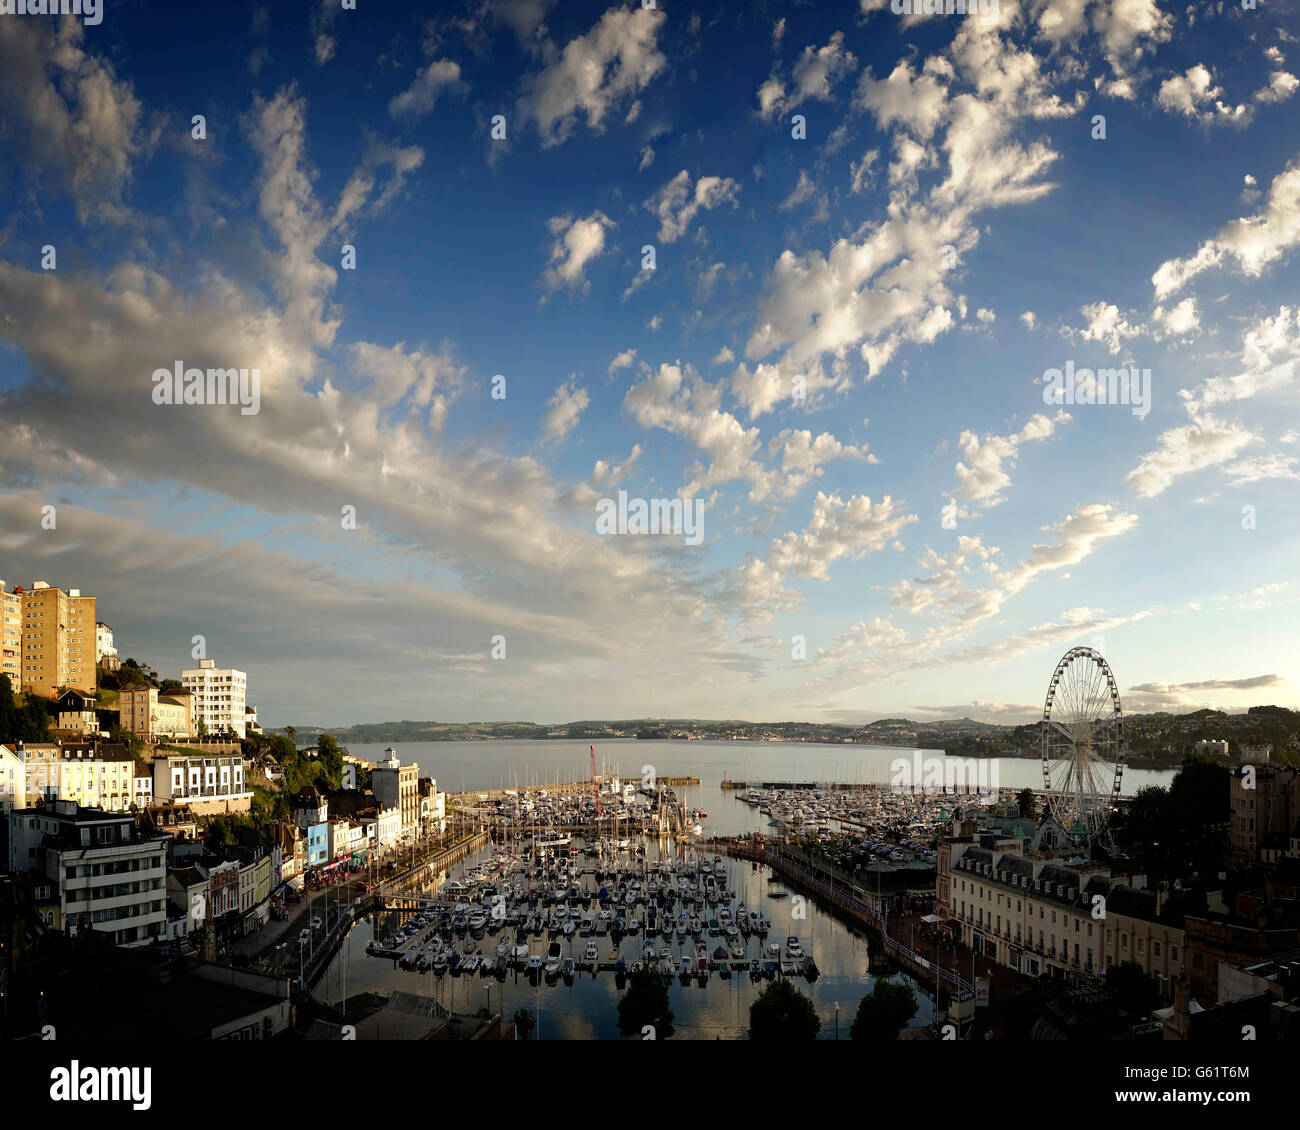 GB - DEVON: Torquay Harbour - Stock Image